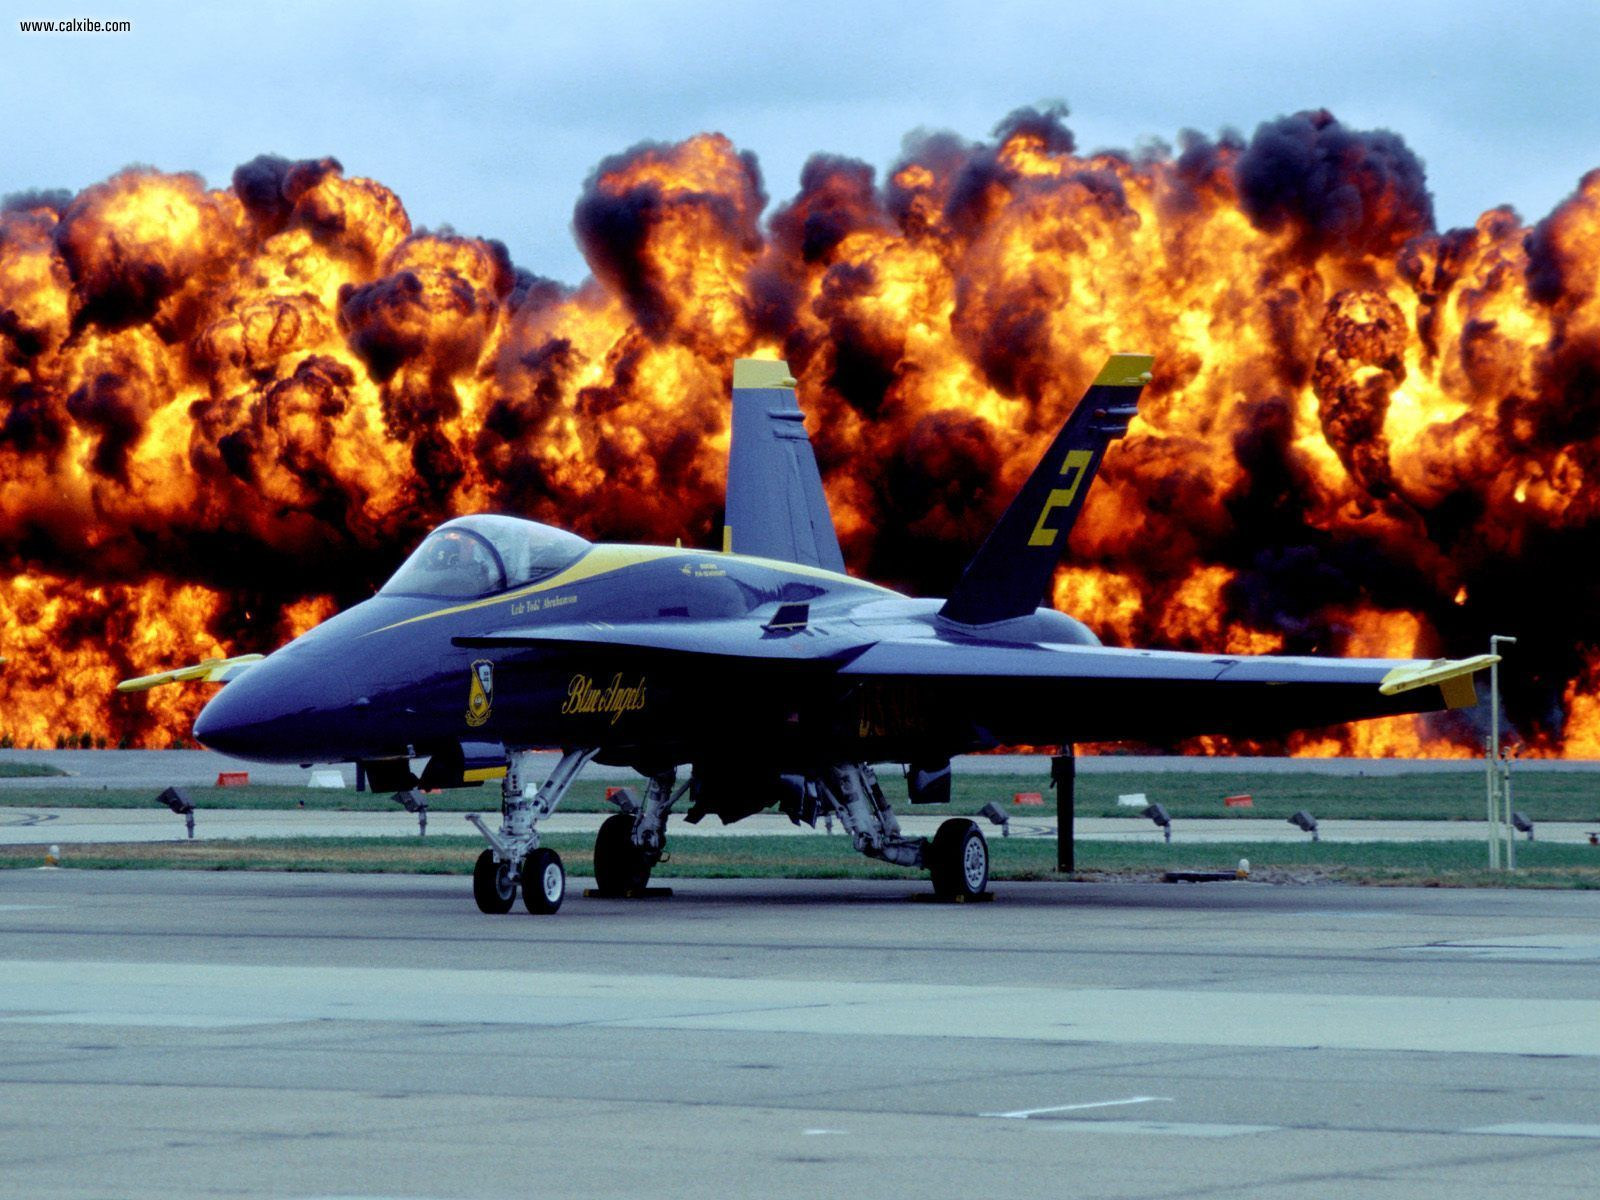 Aircraft Planes Fire Power Of Blue Angel Two picture nr 19664 1600x1200